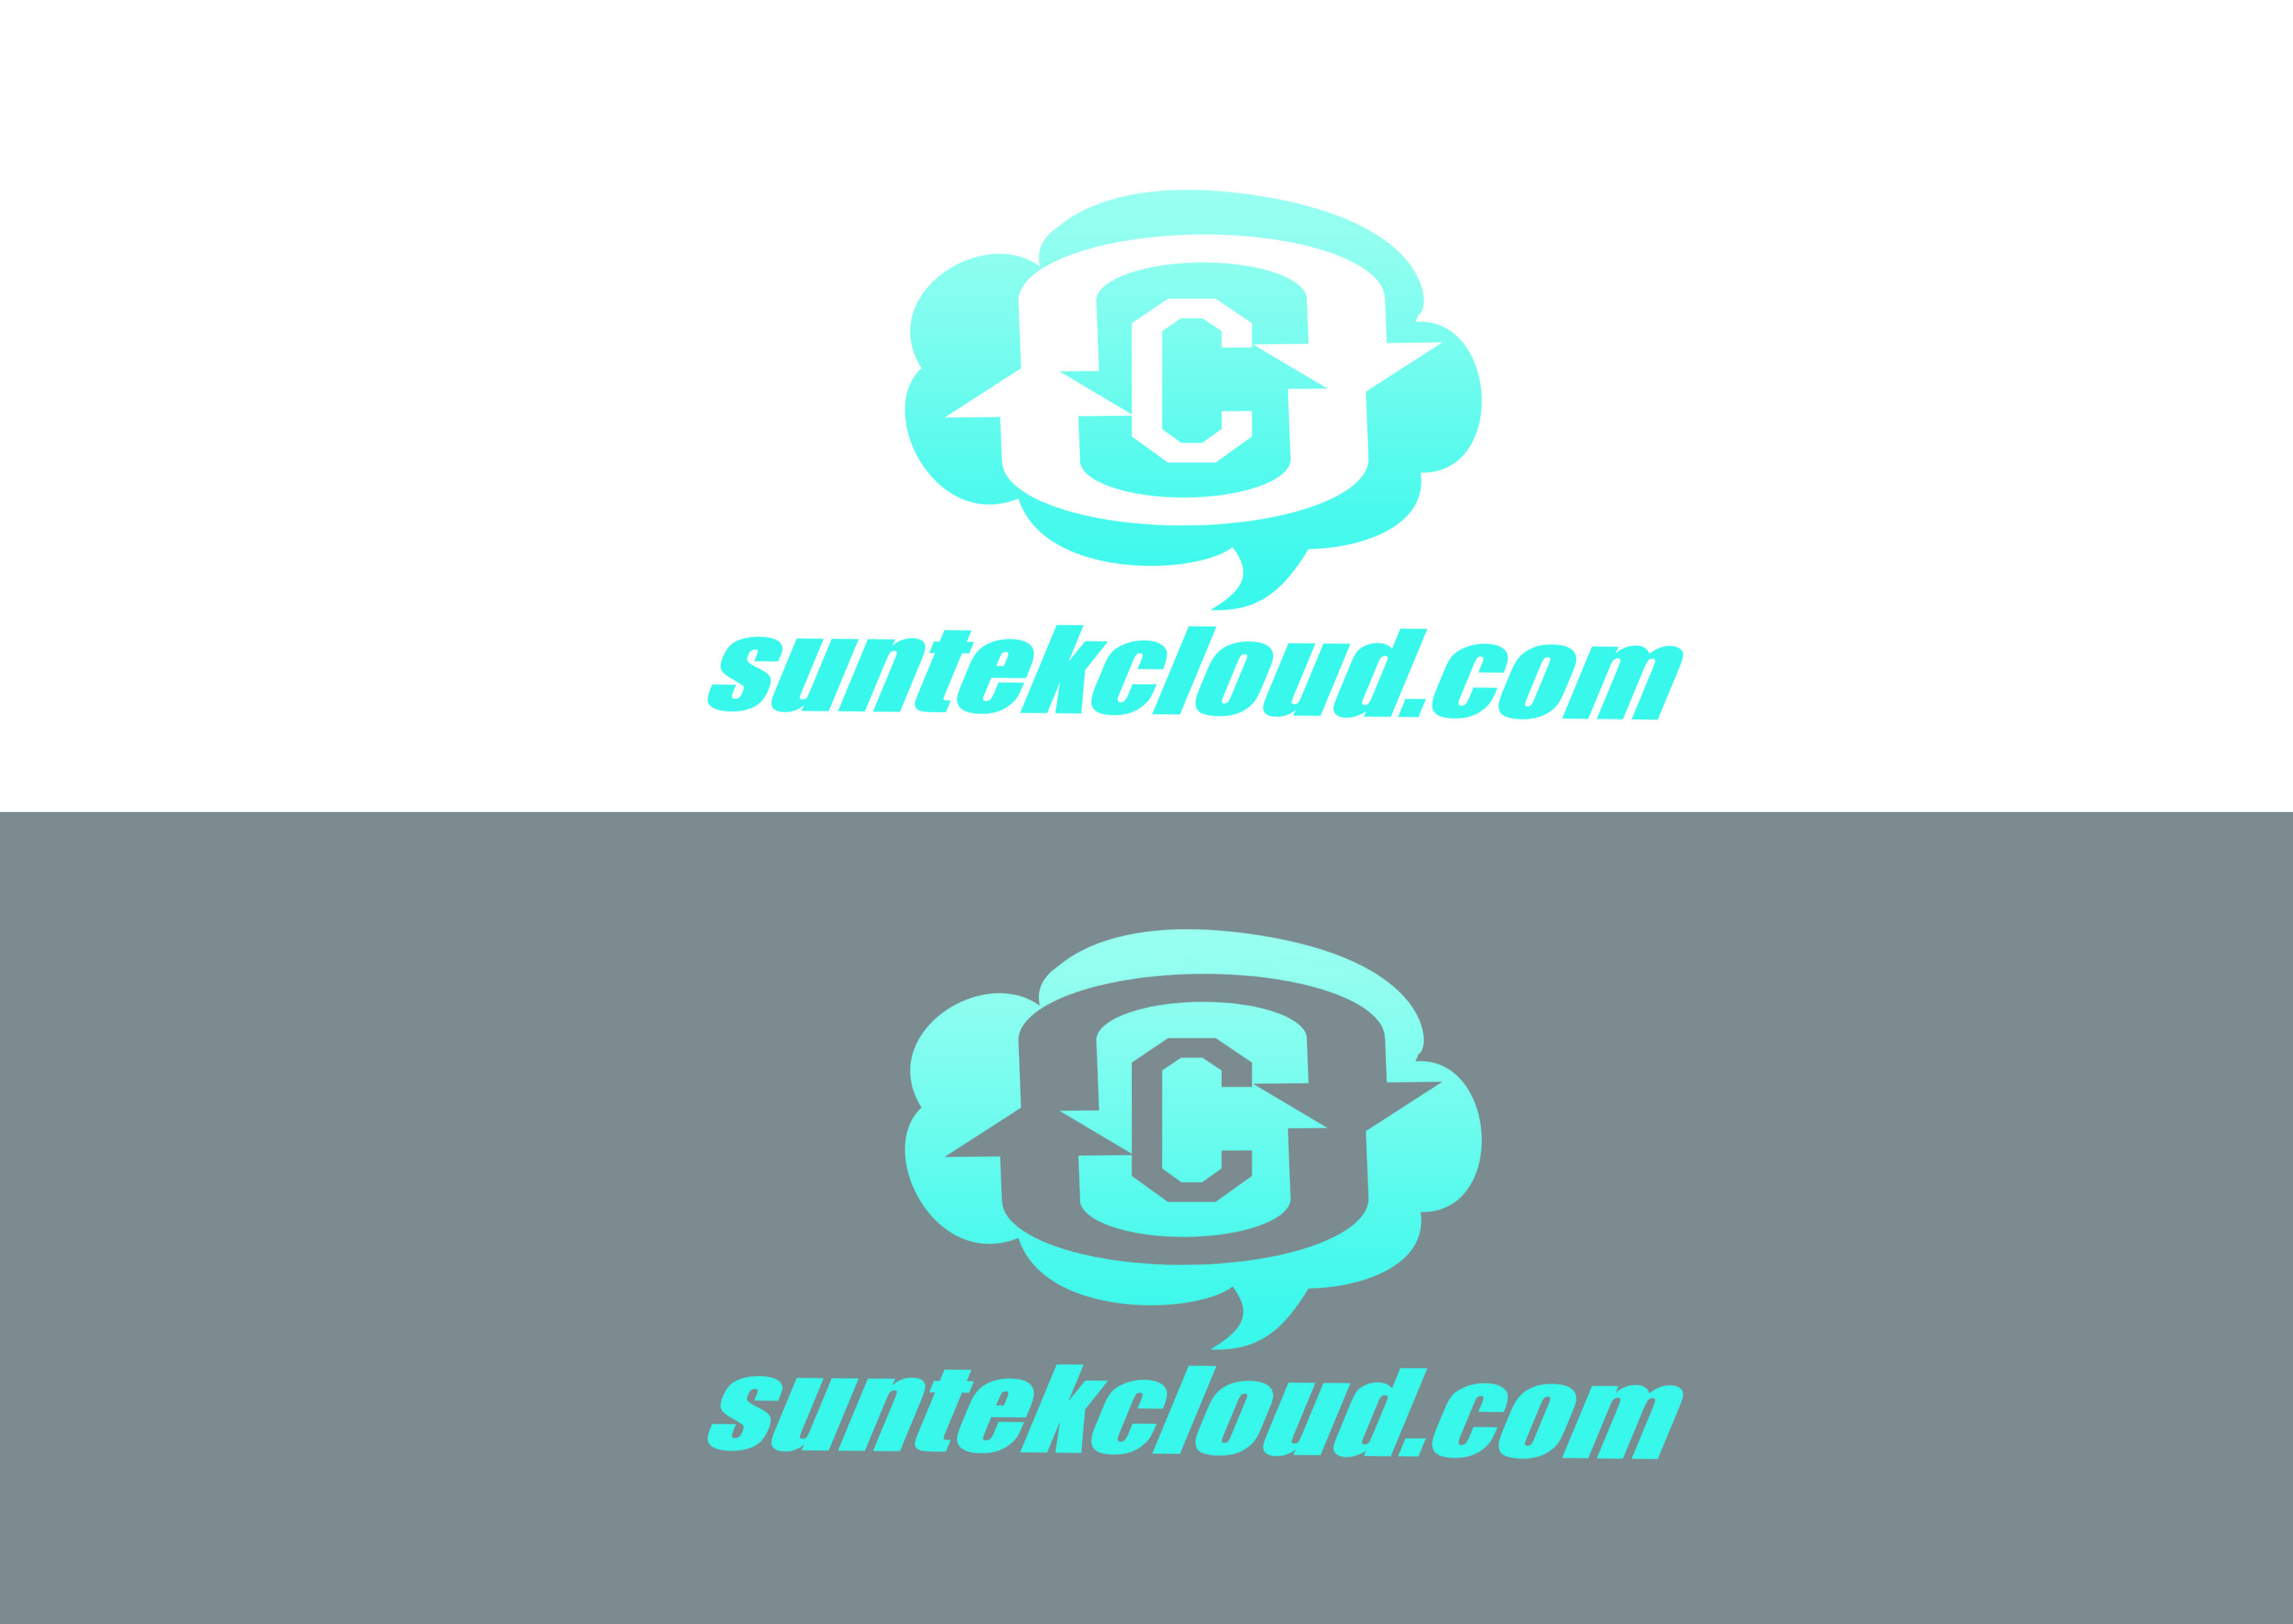 Logo Design by Alan Esclamado - Entry No. 4 in the Logo Design Contest Imaginative Logo Design for suntekcloud.com.